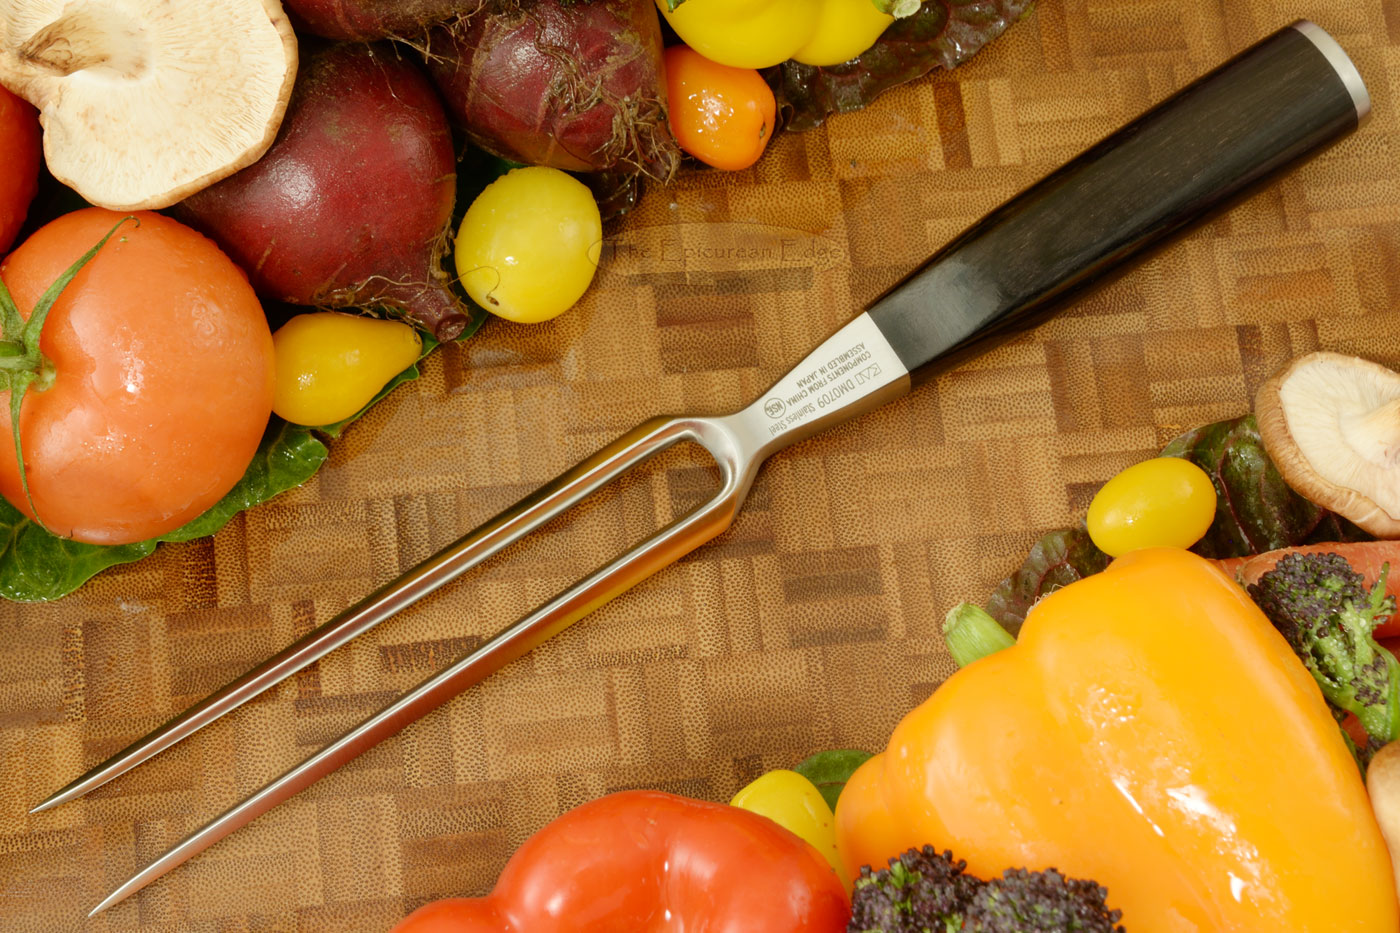 Shun Classic Carving Fork, 6 1/2